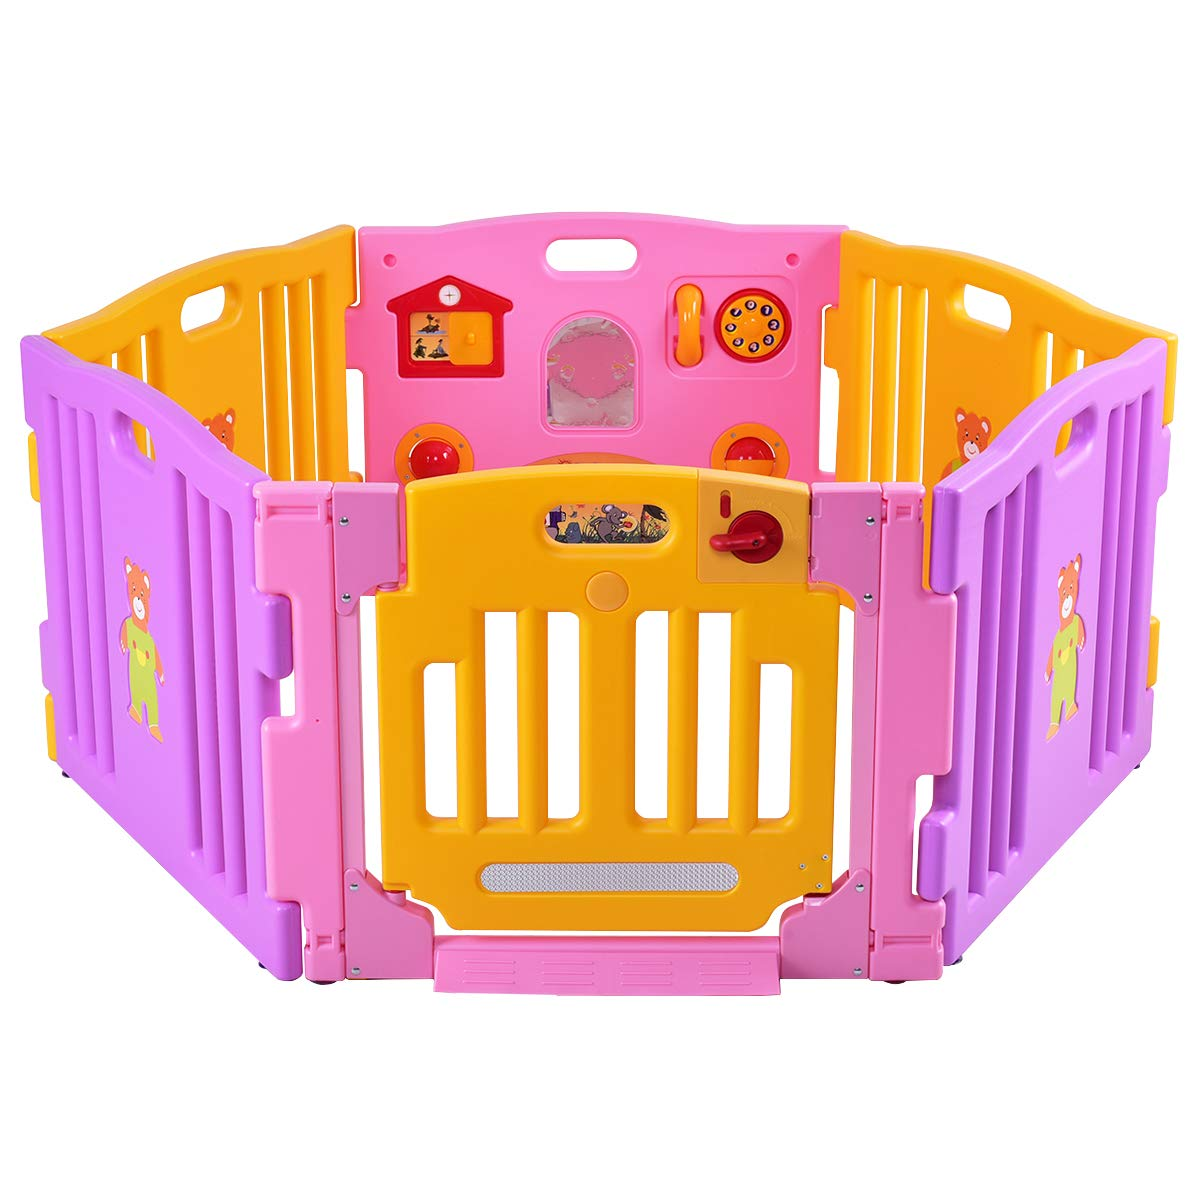 Petsite Baby Safety Gate, Baby Play Fences, Wide Barrier Gate with Walk-Through Door in 2 Directions, Wall-Mount Play Center Yard, Home Indoor Outdoor Metal Gate for Pet Child Pink, 6 Panels